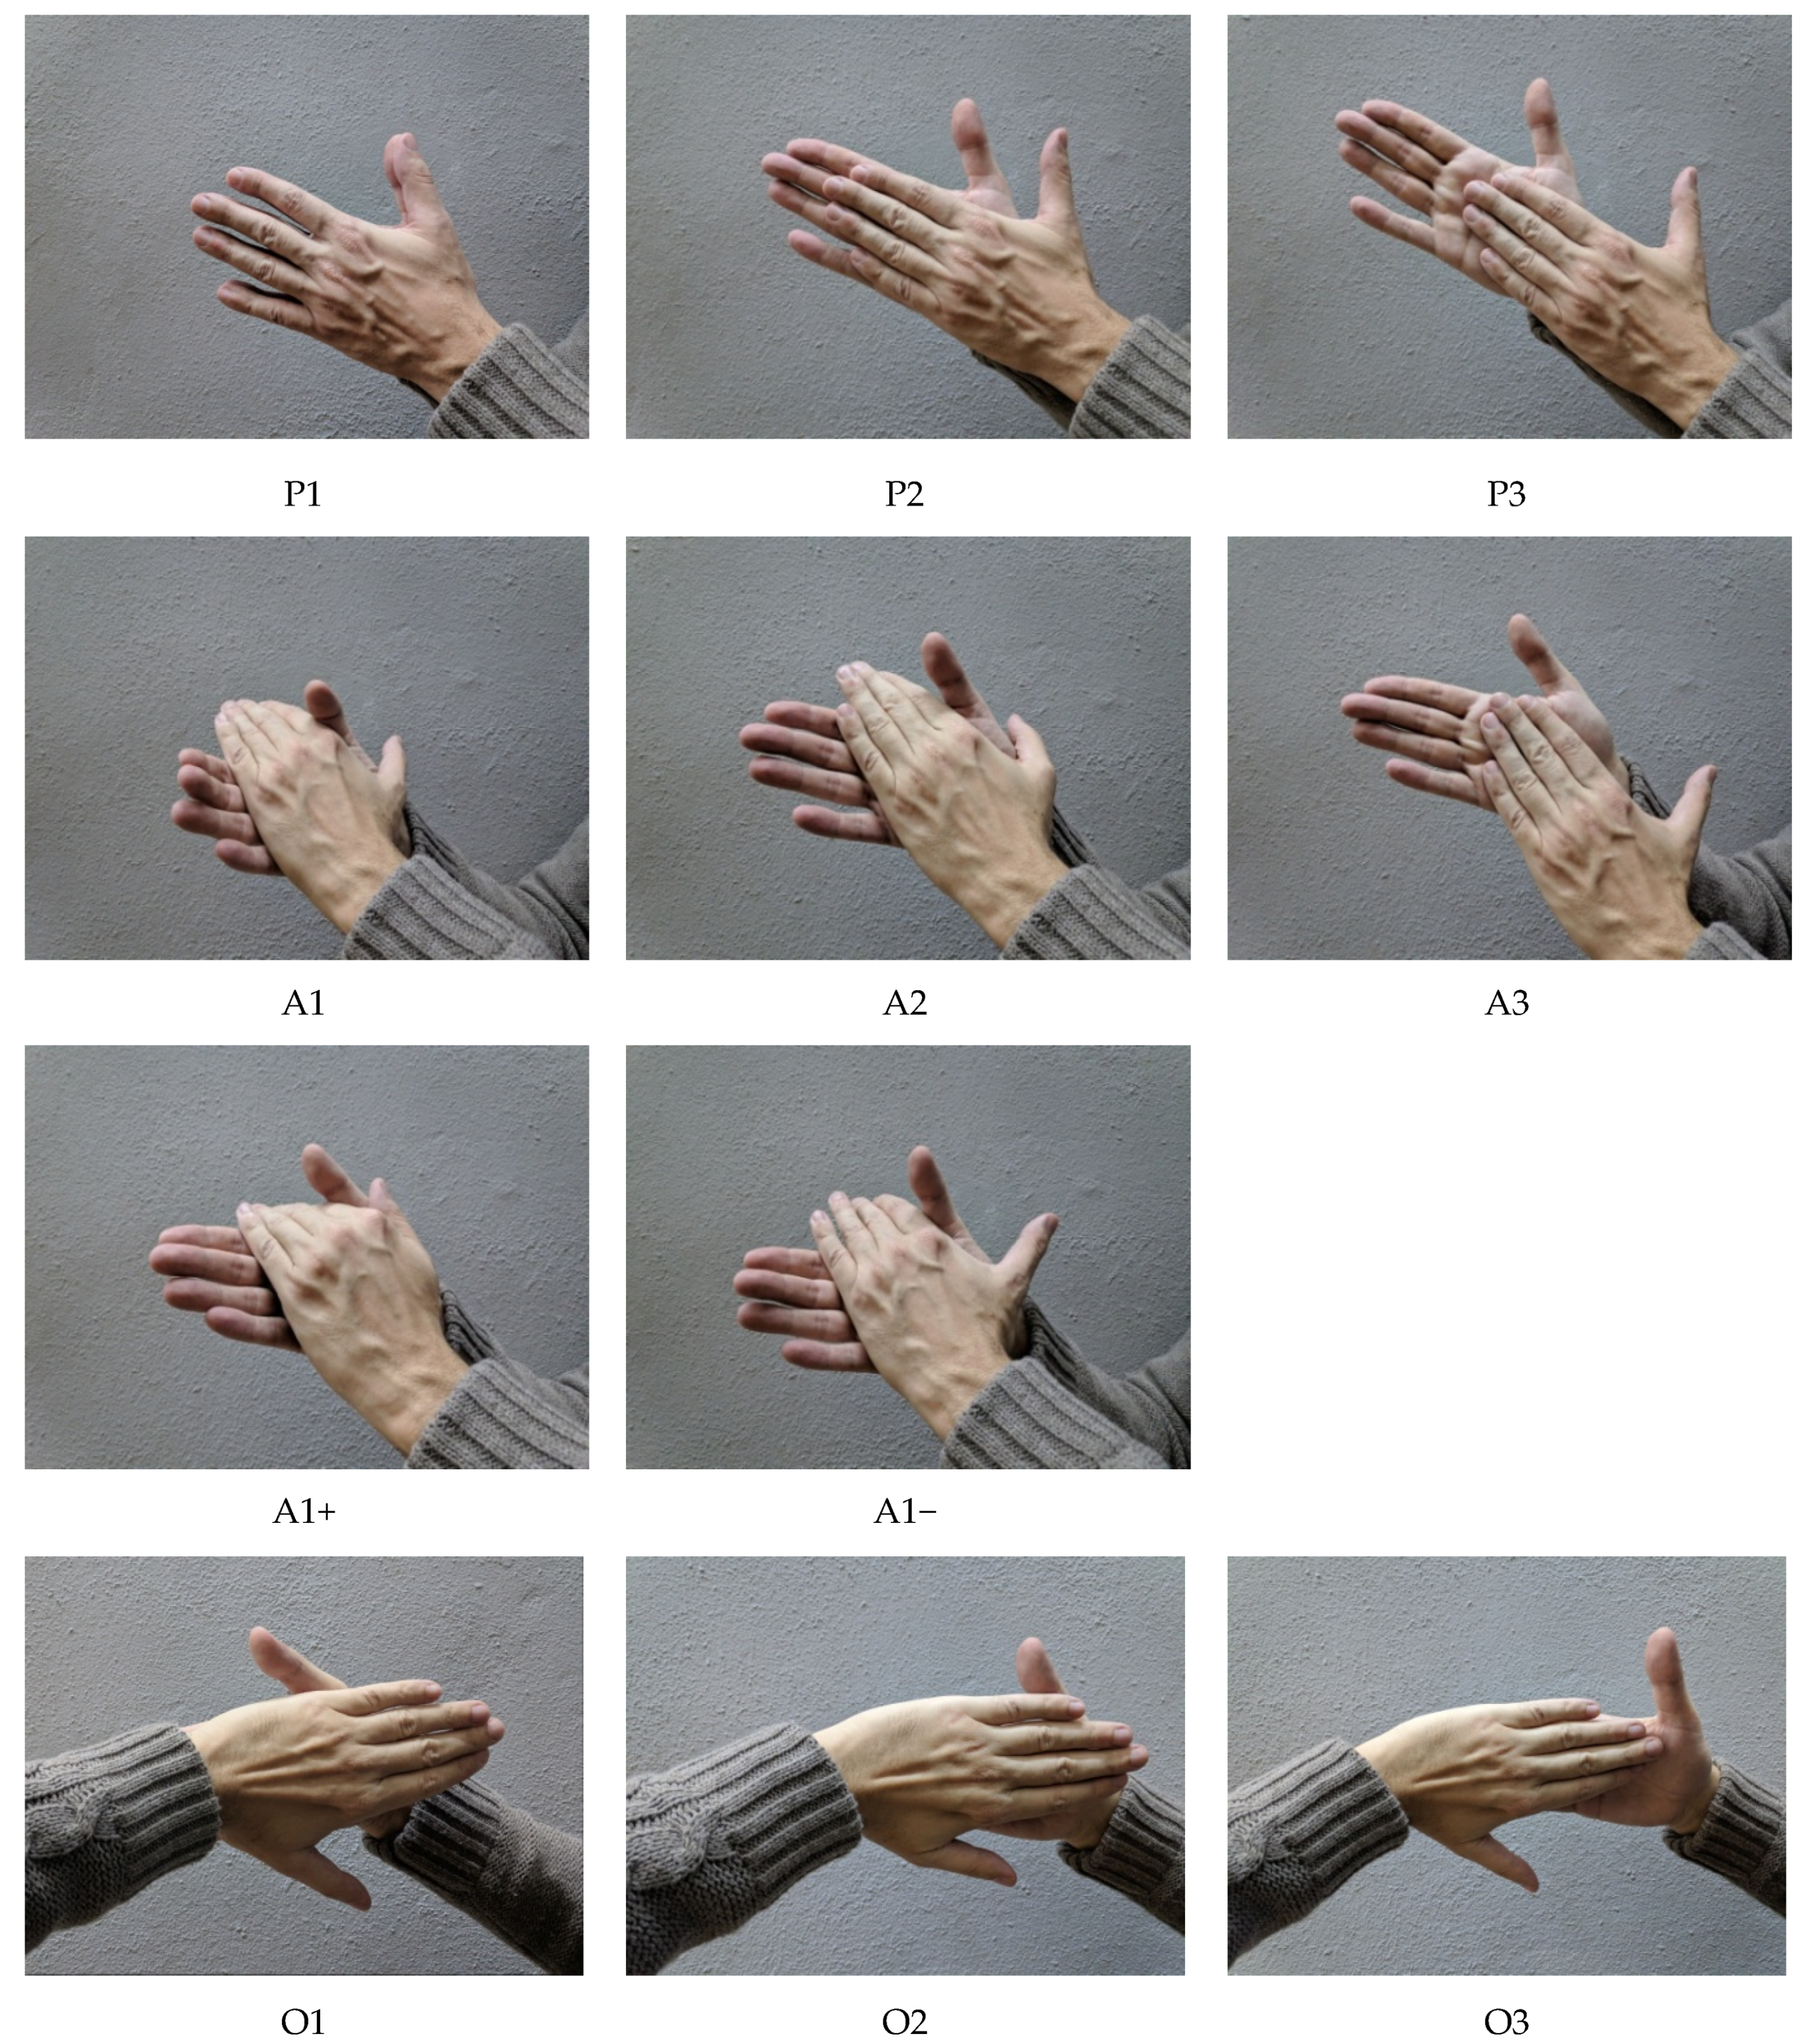 Acoustics Free Full Text Handclap For Acoustic Measurements Optimal Application And Limitations Html Whilk & misky — clap your hands 05:05. handclap for acoustic measurements